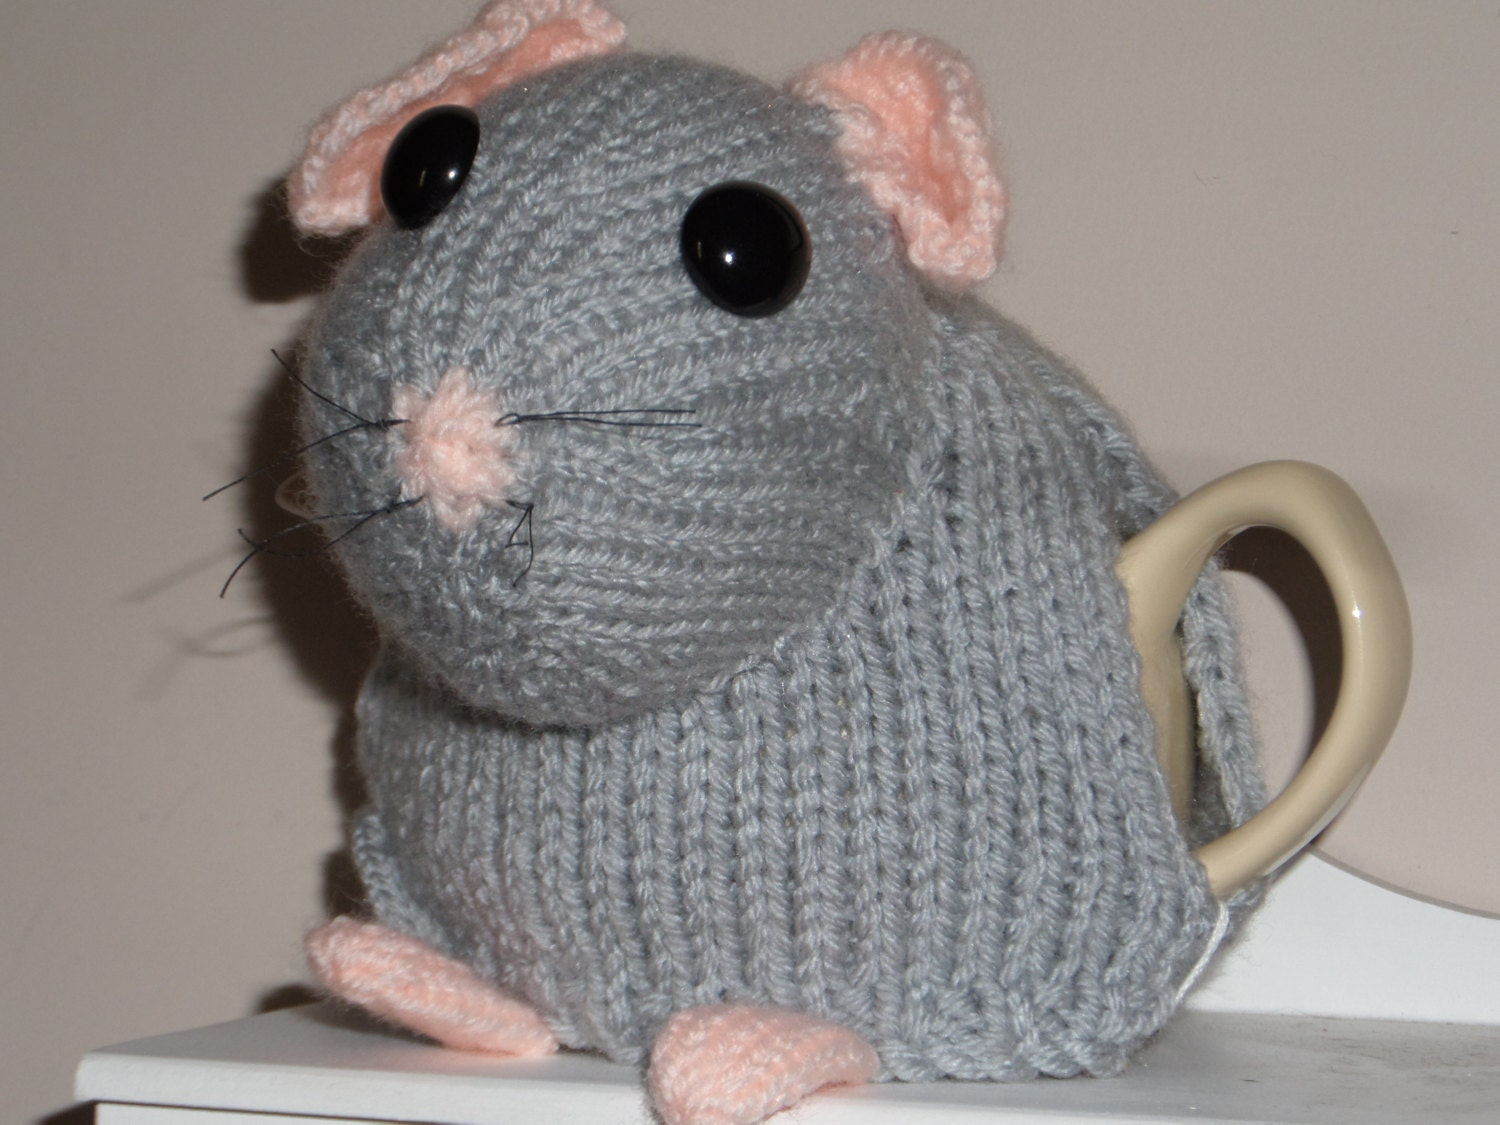 Hand Knitted Tea Cosy Patterns : Hand Knitted Tea Cosy Grey Dormouse to fit small 2 cup tea